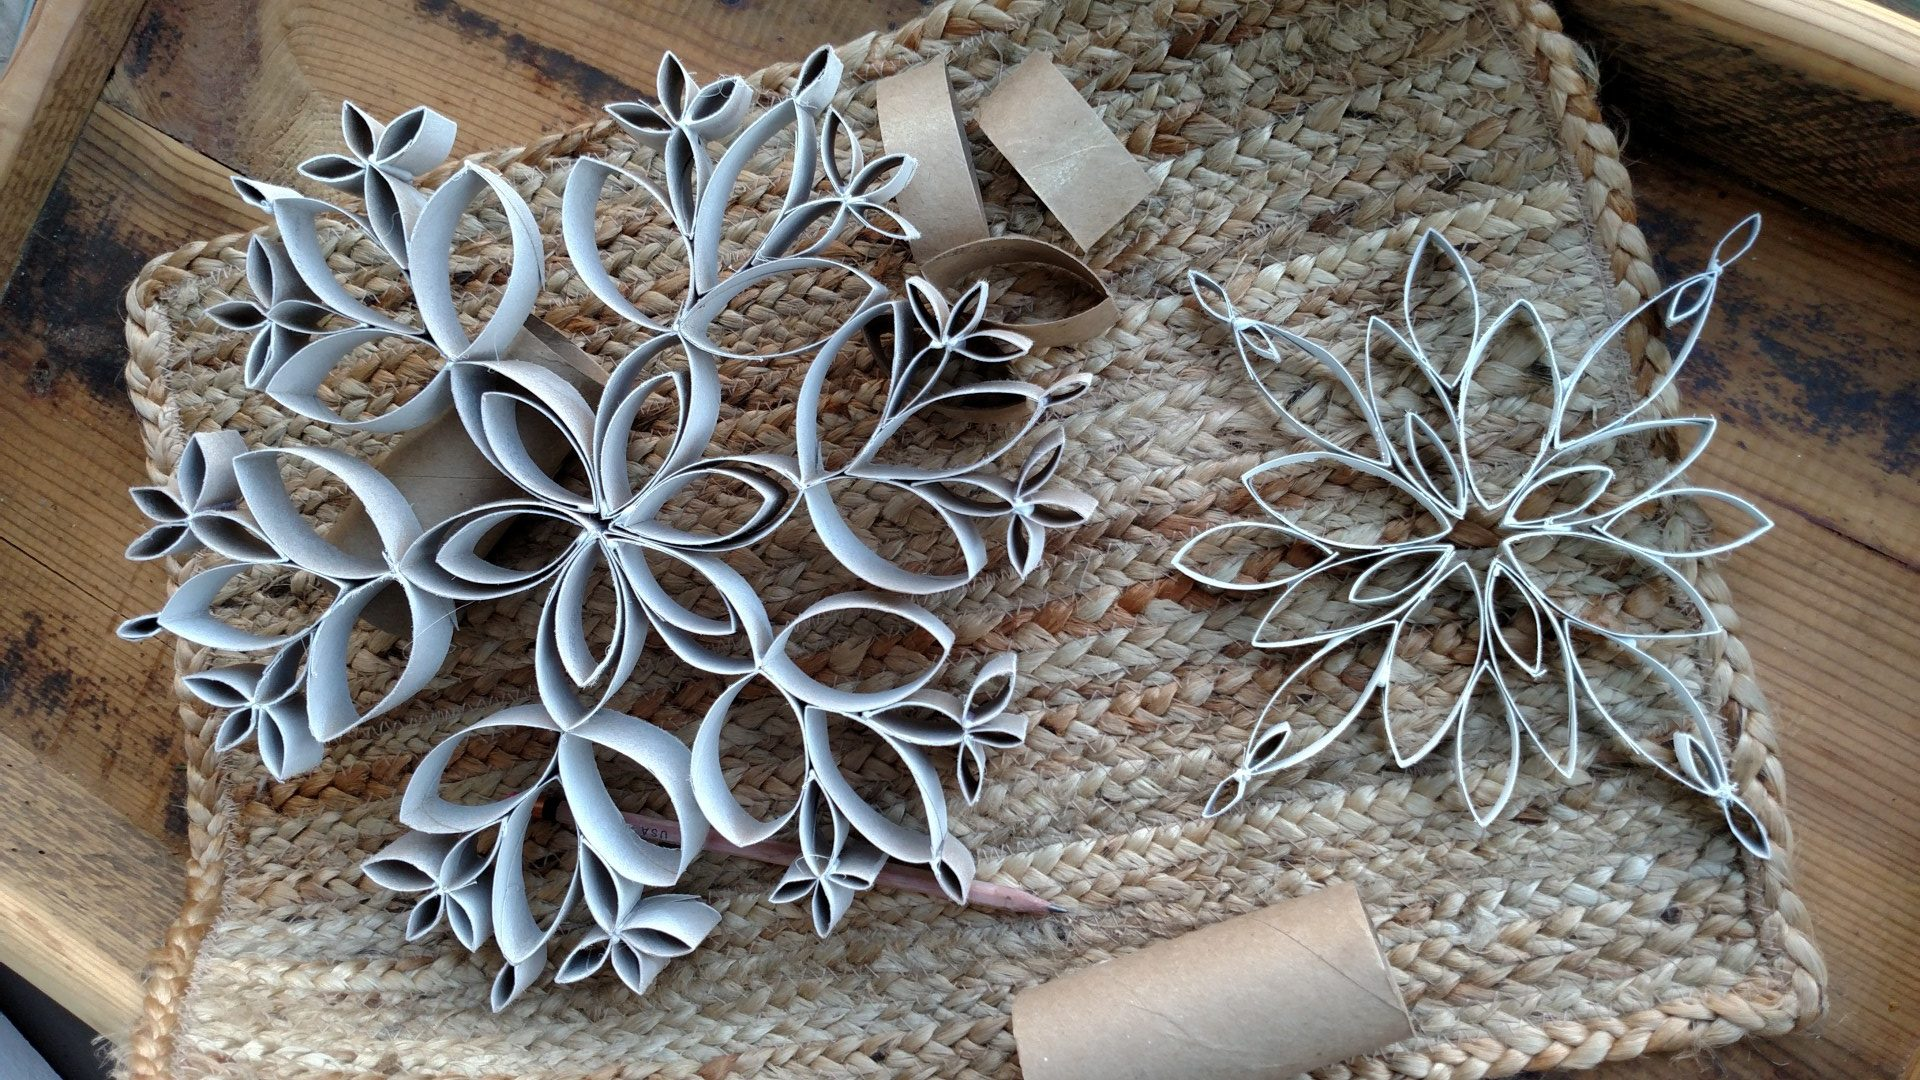 Christmas craft idea zero waste snowflakes from toilet paper. Craft with kids.